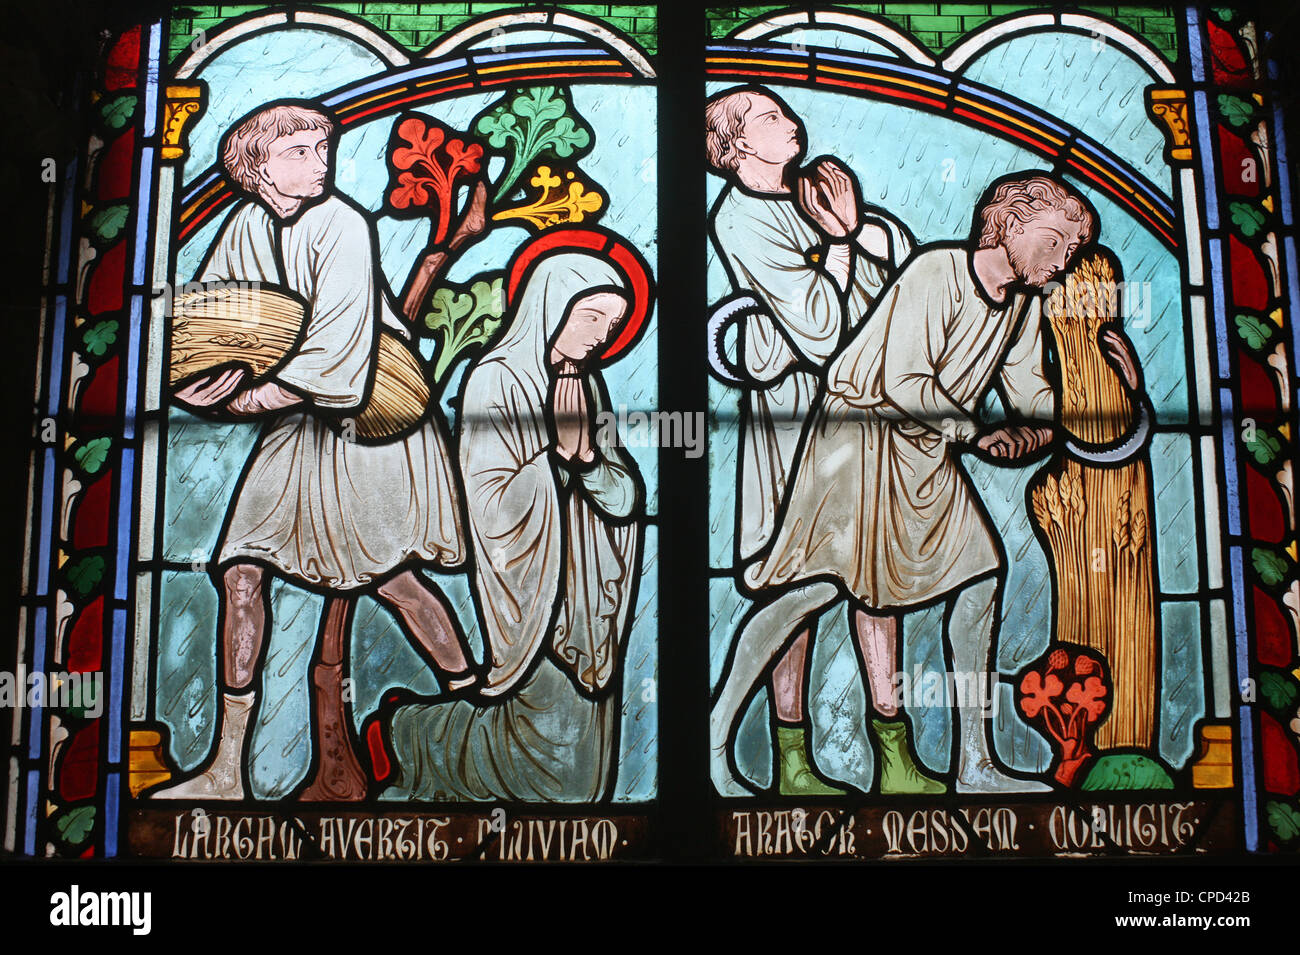 Stained glass depicting Sainte Genevieve's life, cloister of Notre-Dame de Paris cathedral, Paris, France, Europe - Stock Image